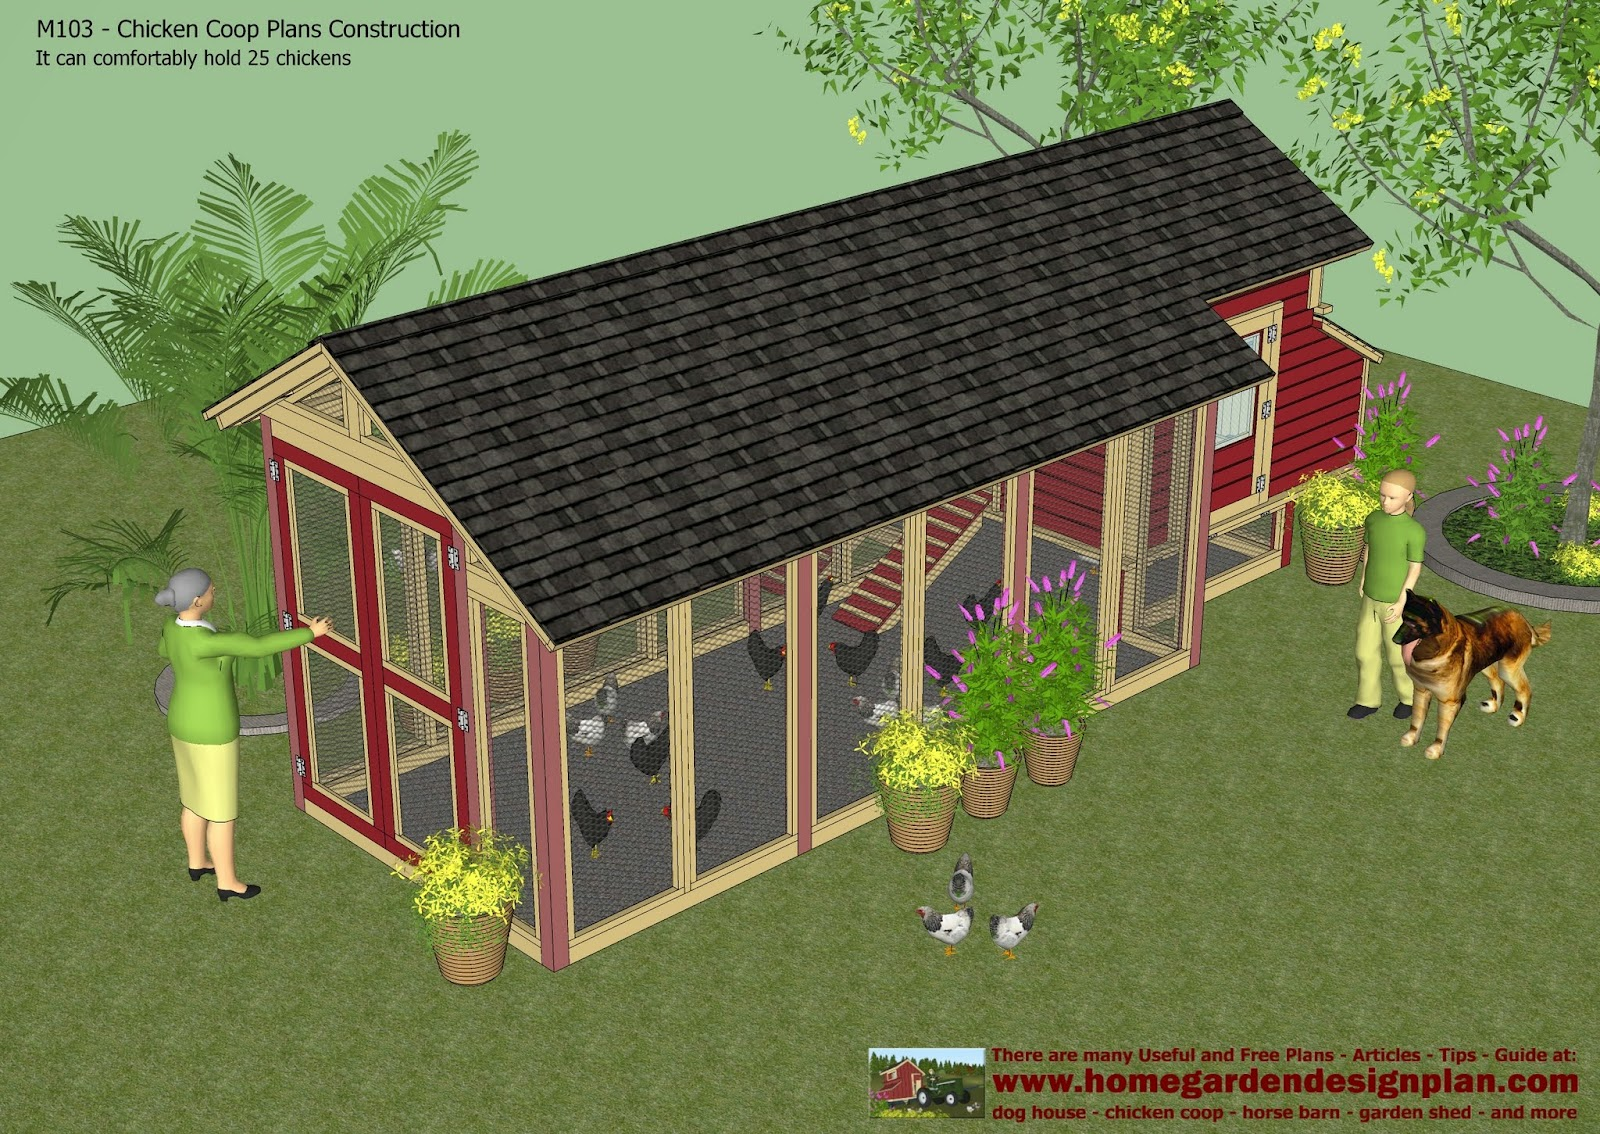 Home garden plans m103 chicken coop plans construction for Plans chicken coop